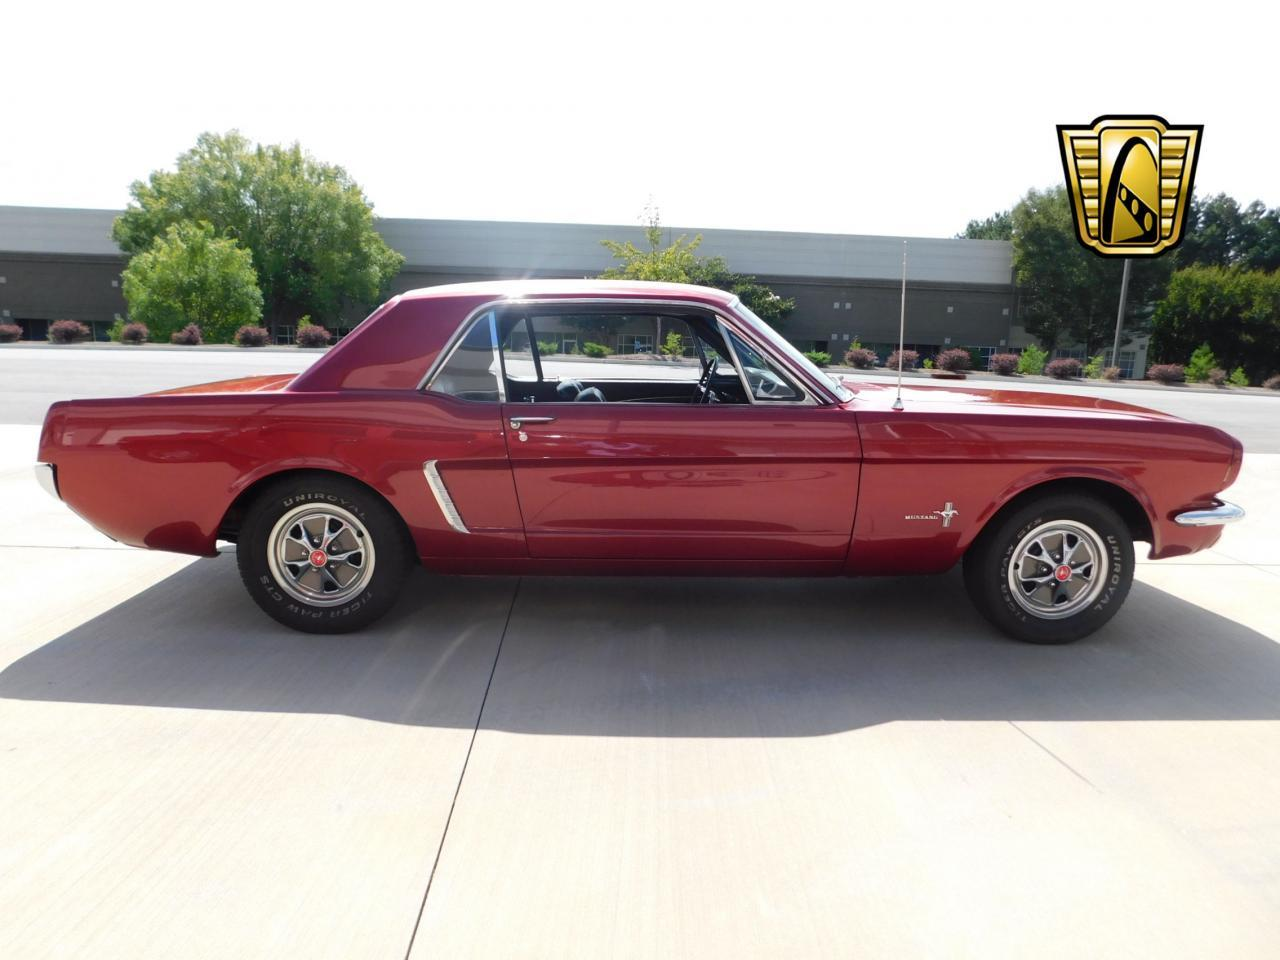 Large Picture of '65 Ford Mustang located in Alpharetta Georgia - $14,595.00 Offered by Gateway Classic Cars - Atlanta - LDV0